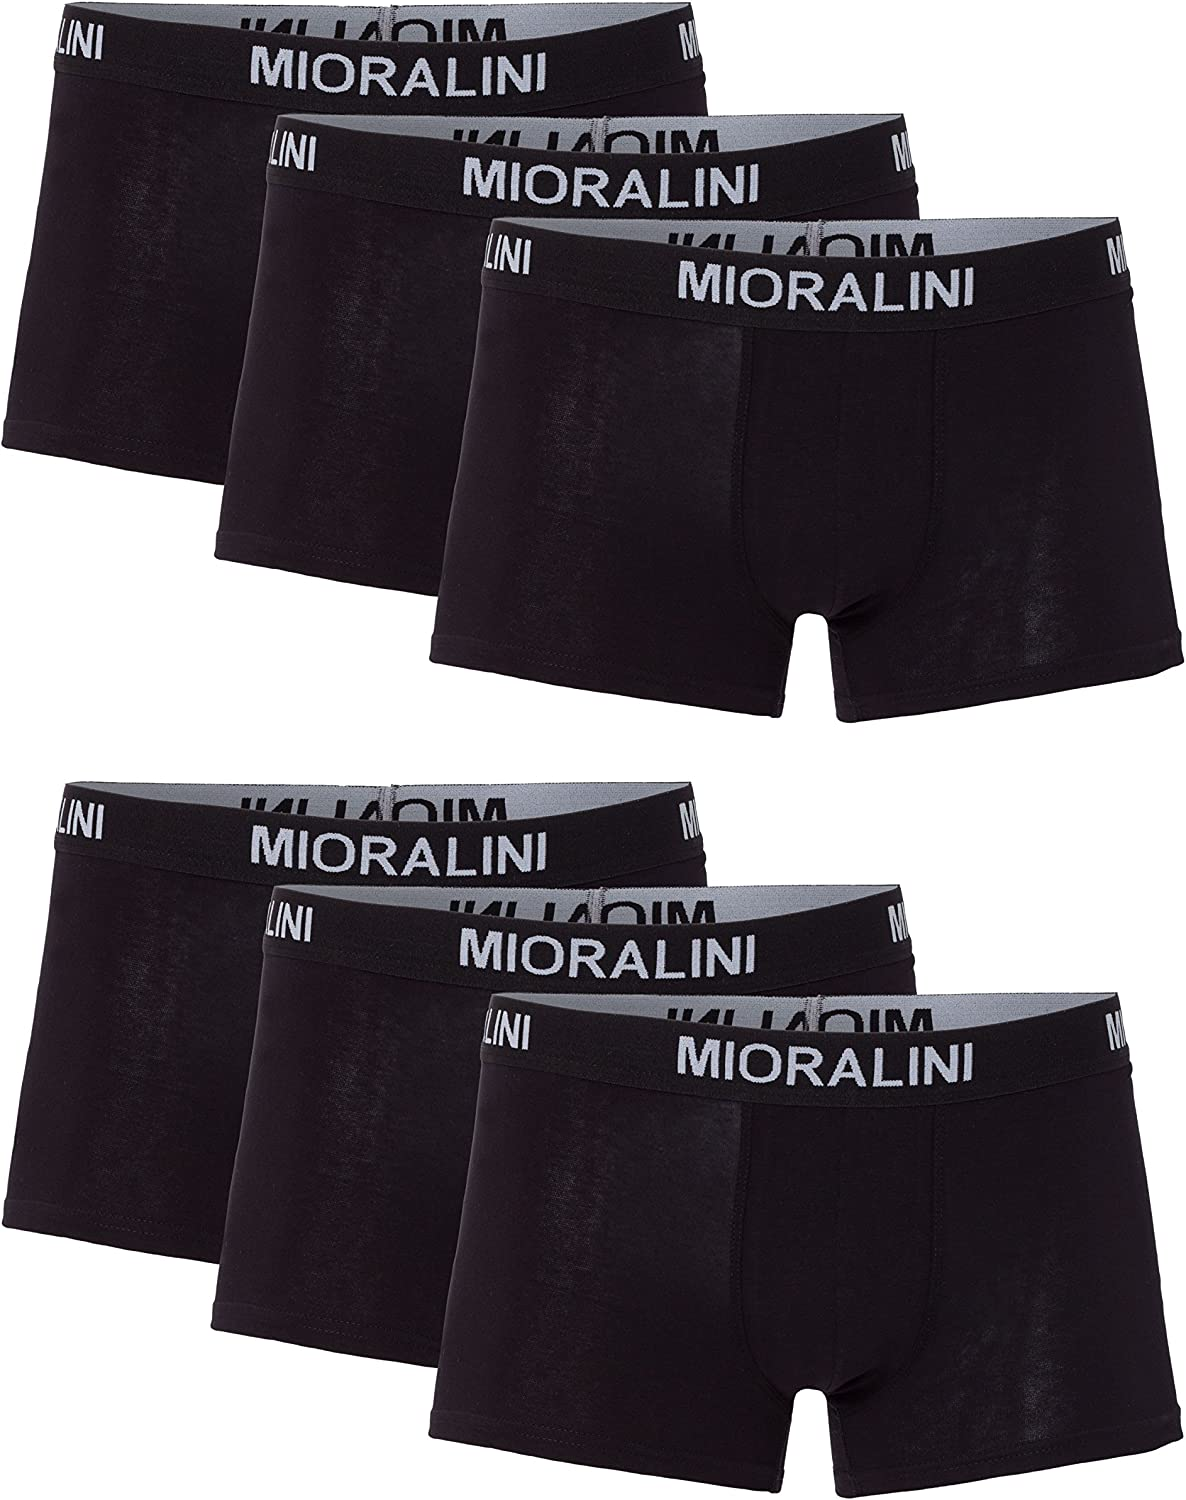 MioRalini 12 or 6 Pairs Stretch Boxershorts Hipster Multicolored Pack